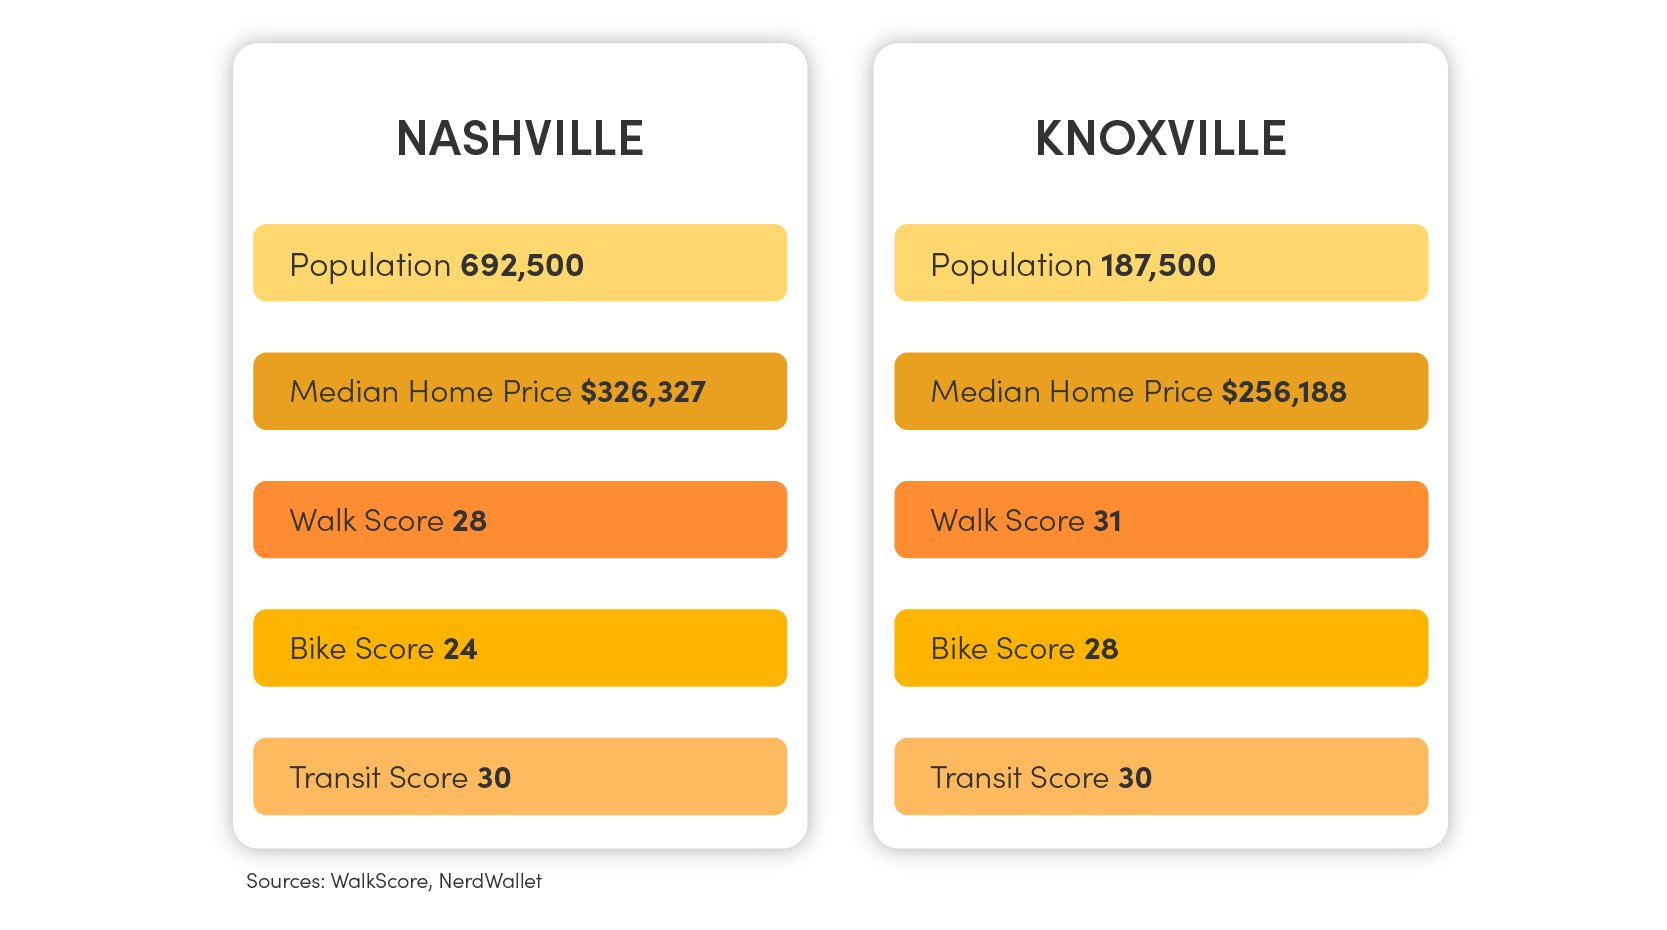 Nashville vs. Knoxville Chart with information on the population, median home price, transit score, bike score, and walk score.